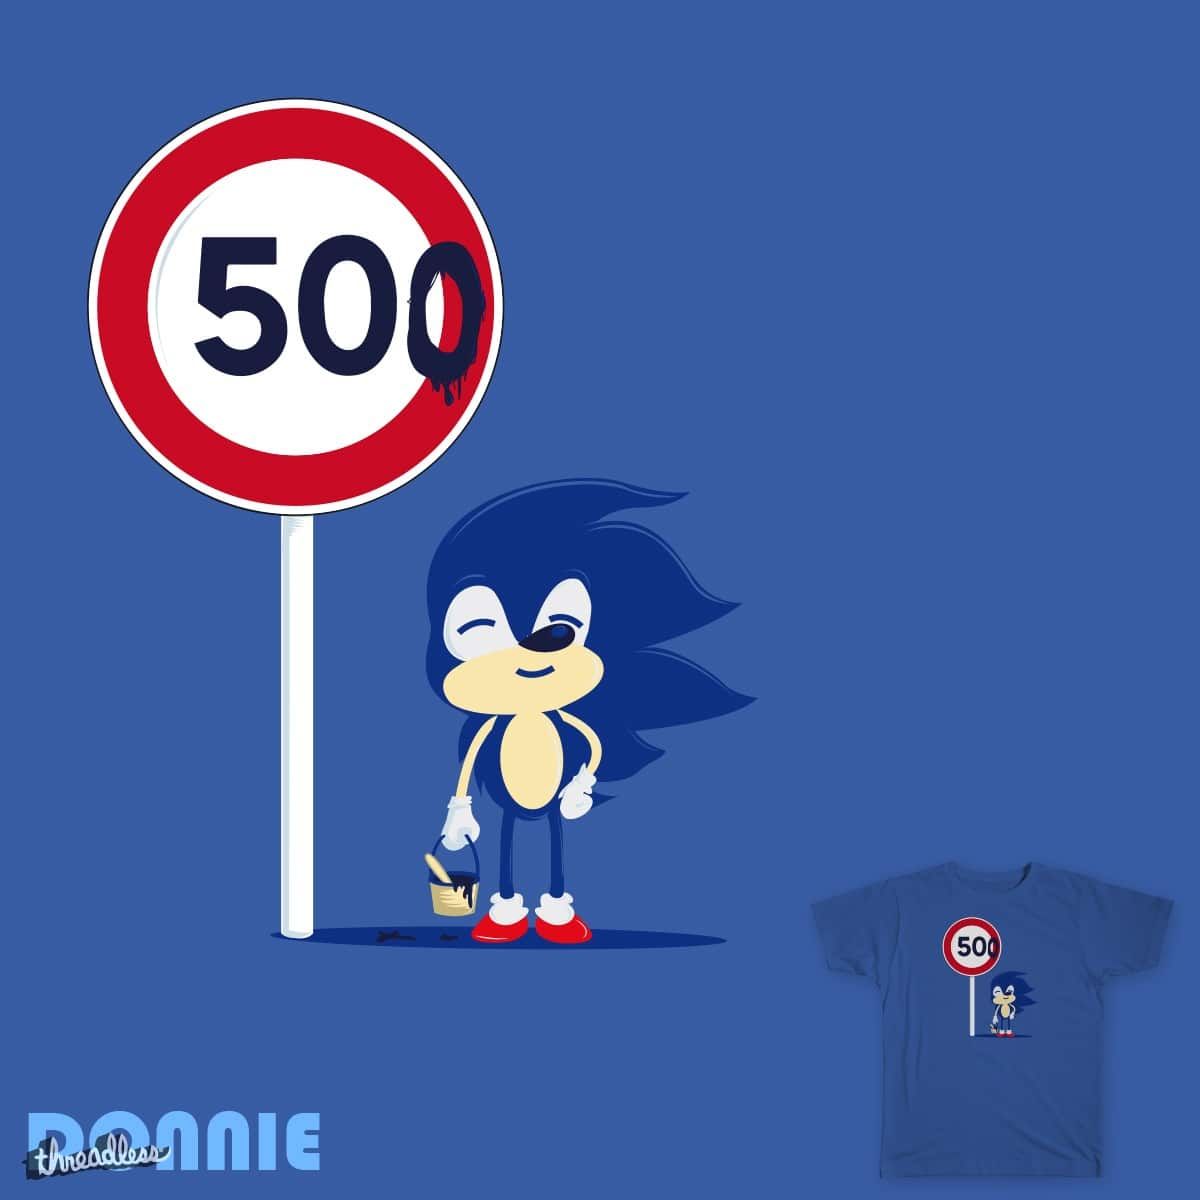 No Limit by DonnieArt on Threadless